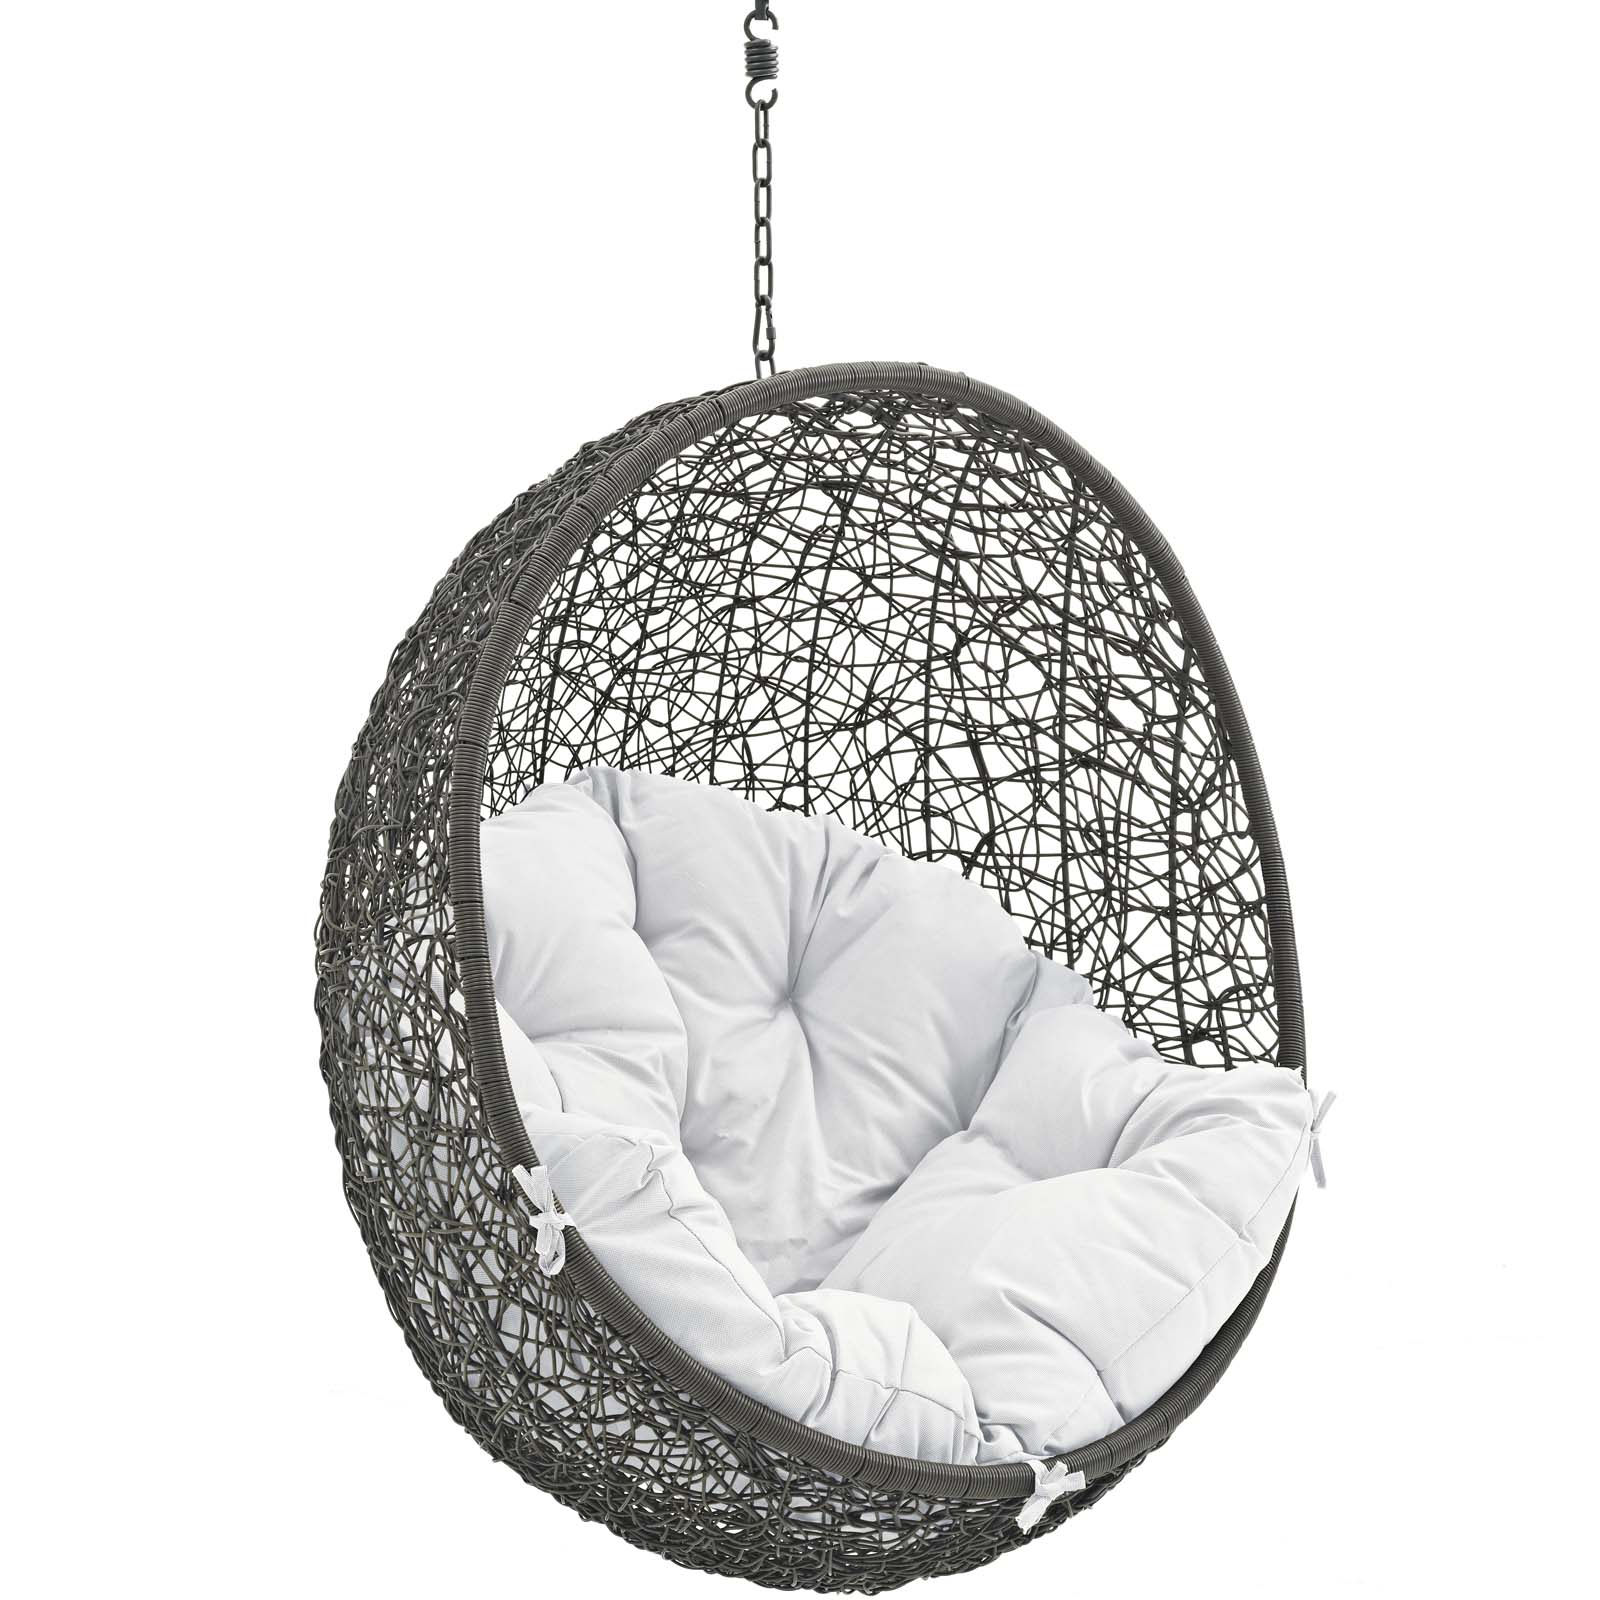 Hide Outdoor Patio Swing Chair With Stand - White Gray | eBay